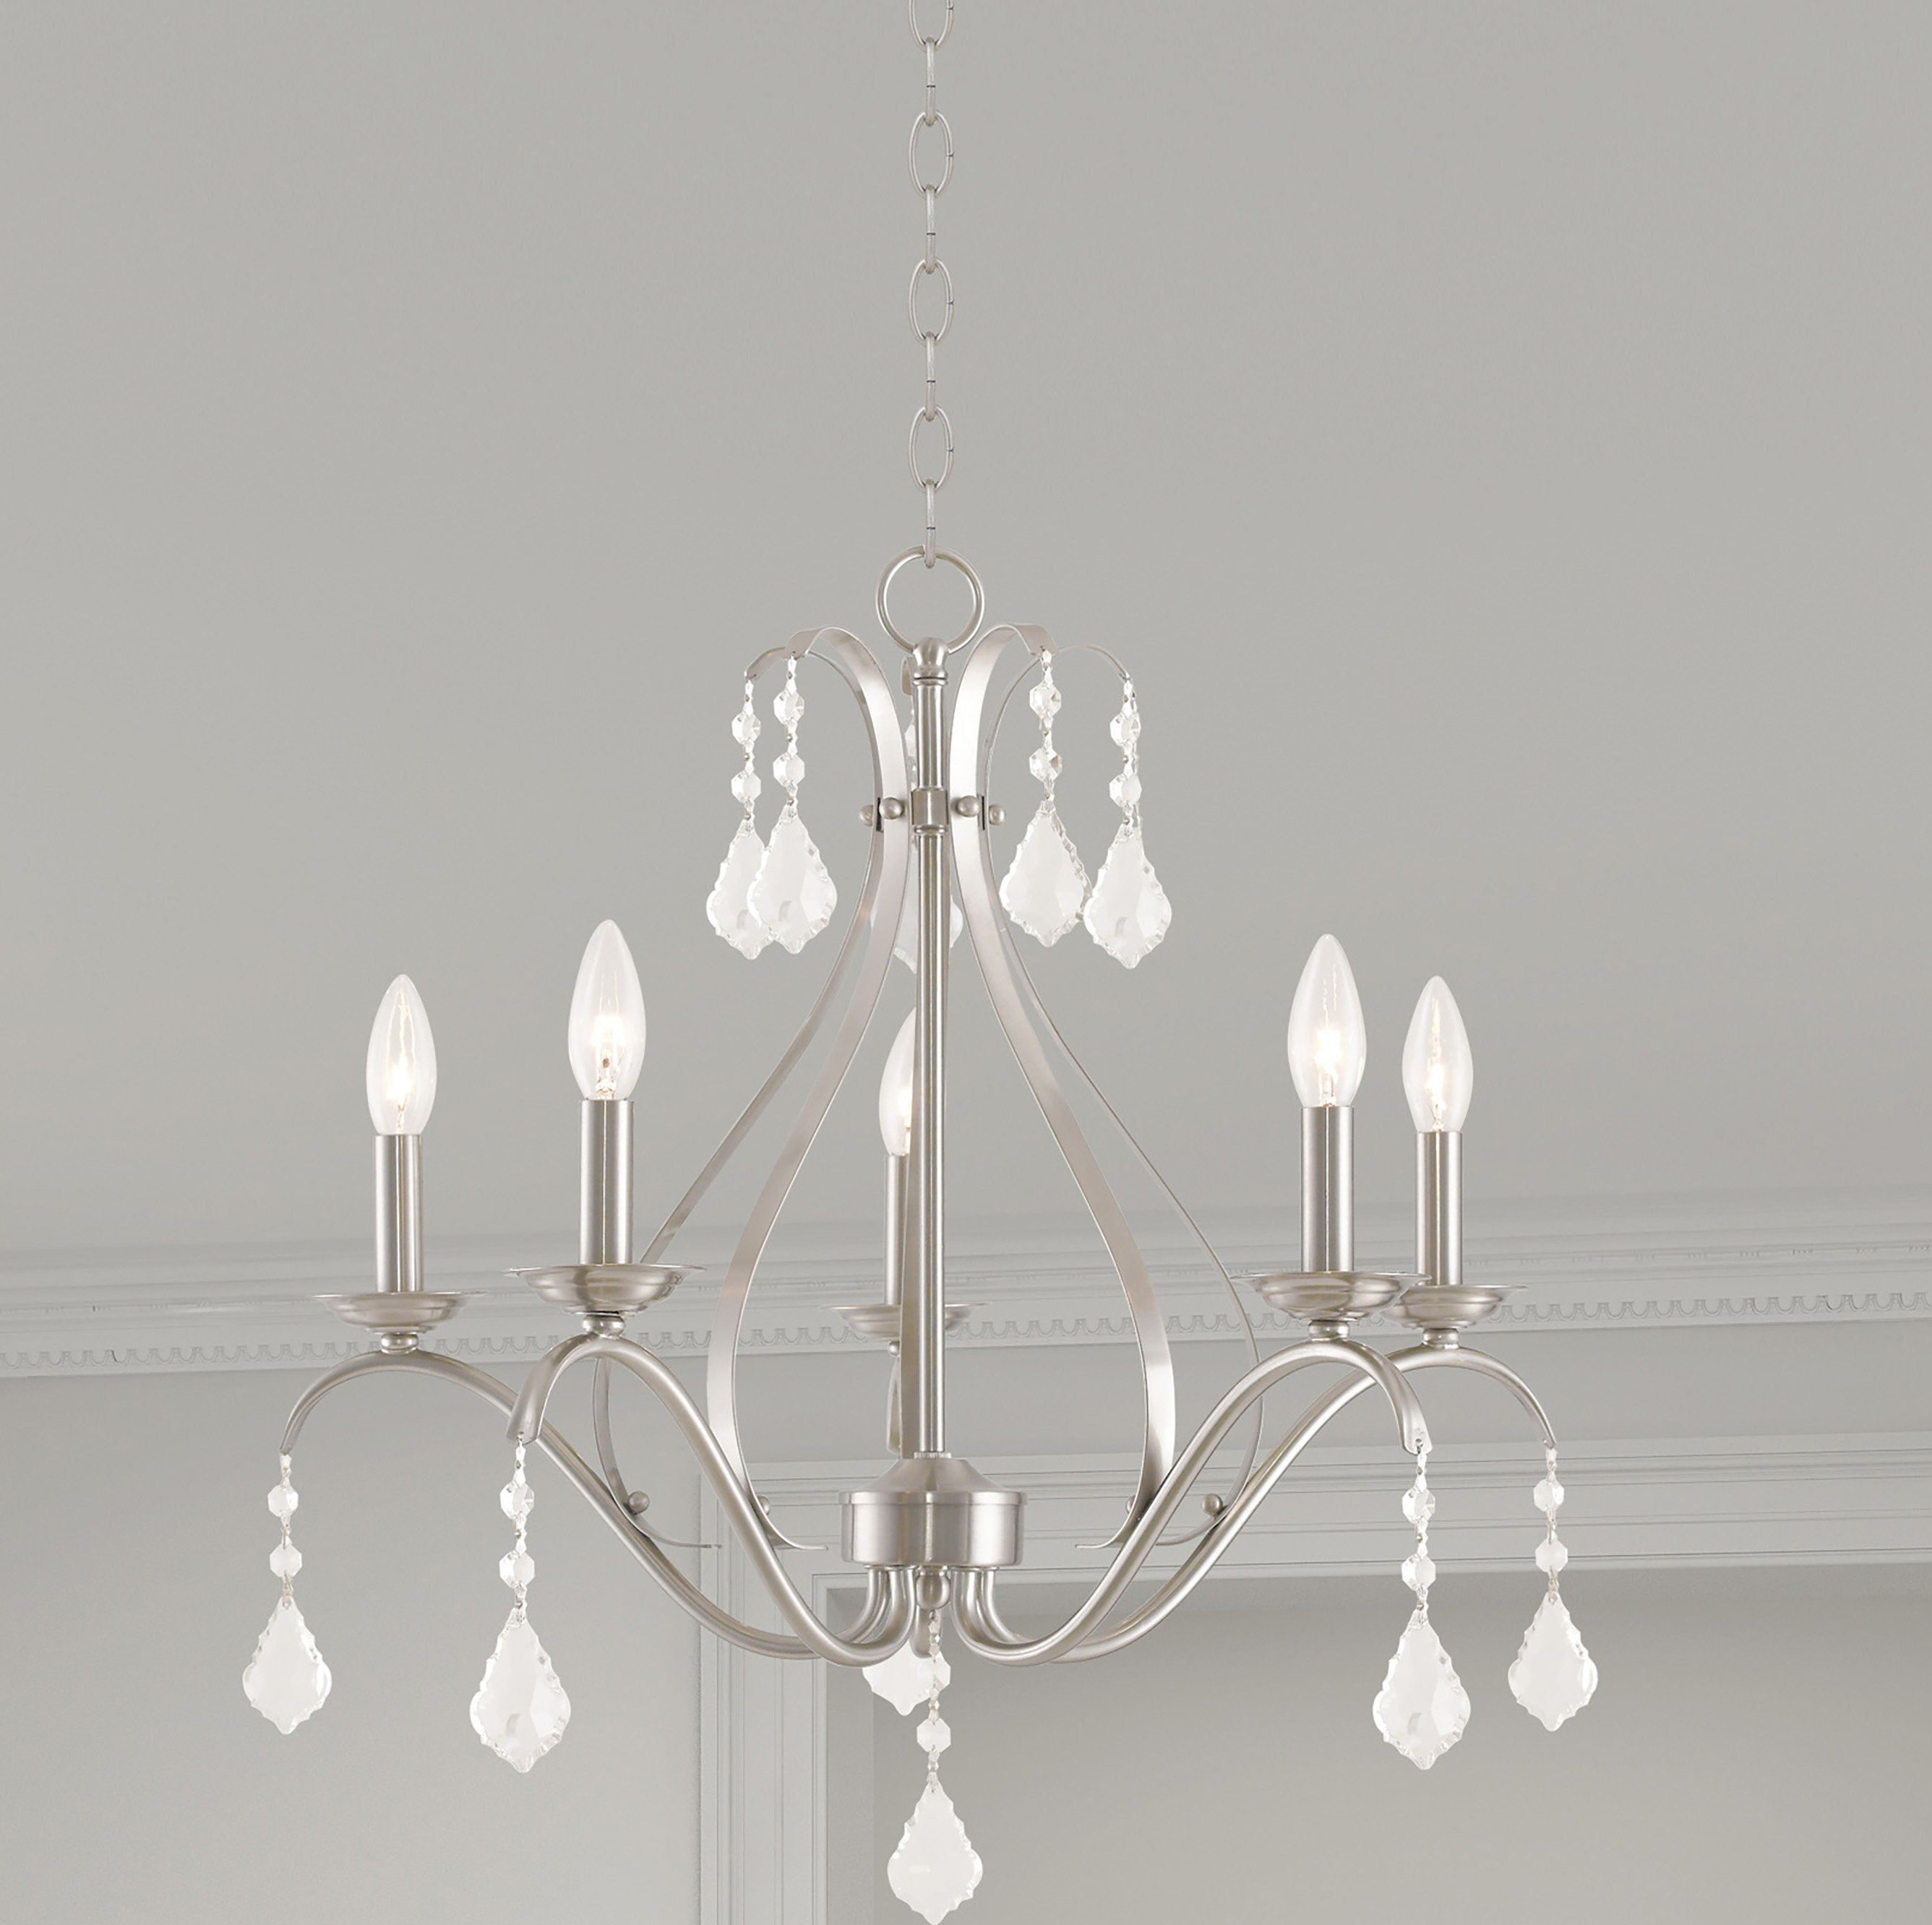 Aria 5 Light Candle Style Chandelier In Berger 5 Light Candle Style Chandeliers (View 4 of 30)